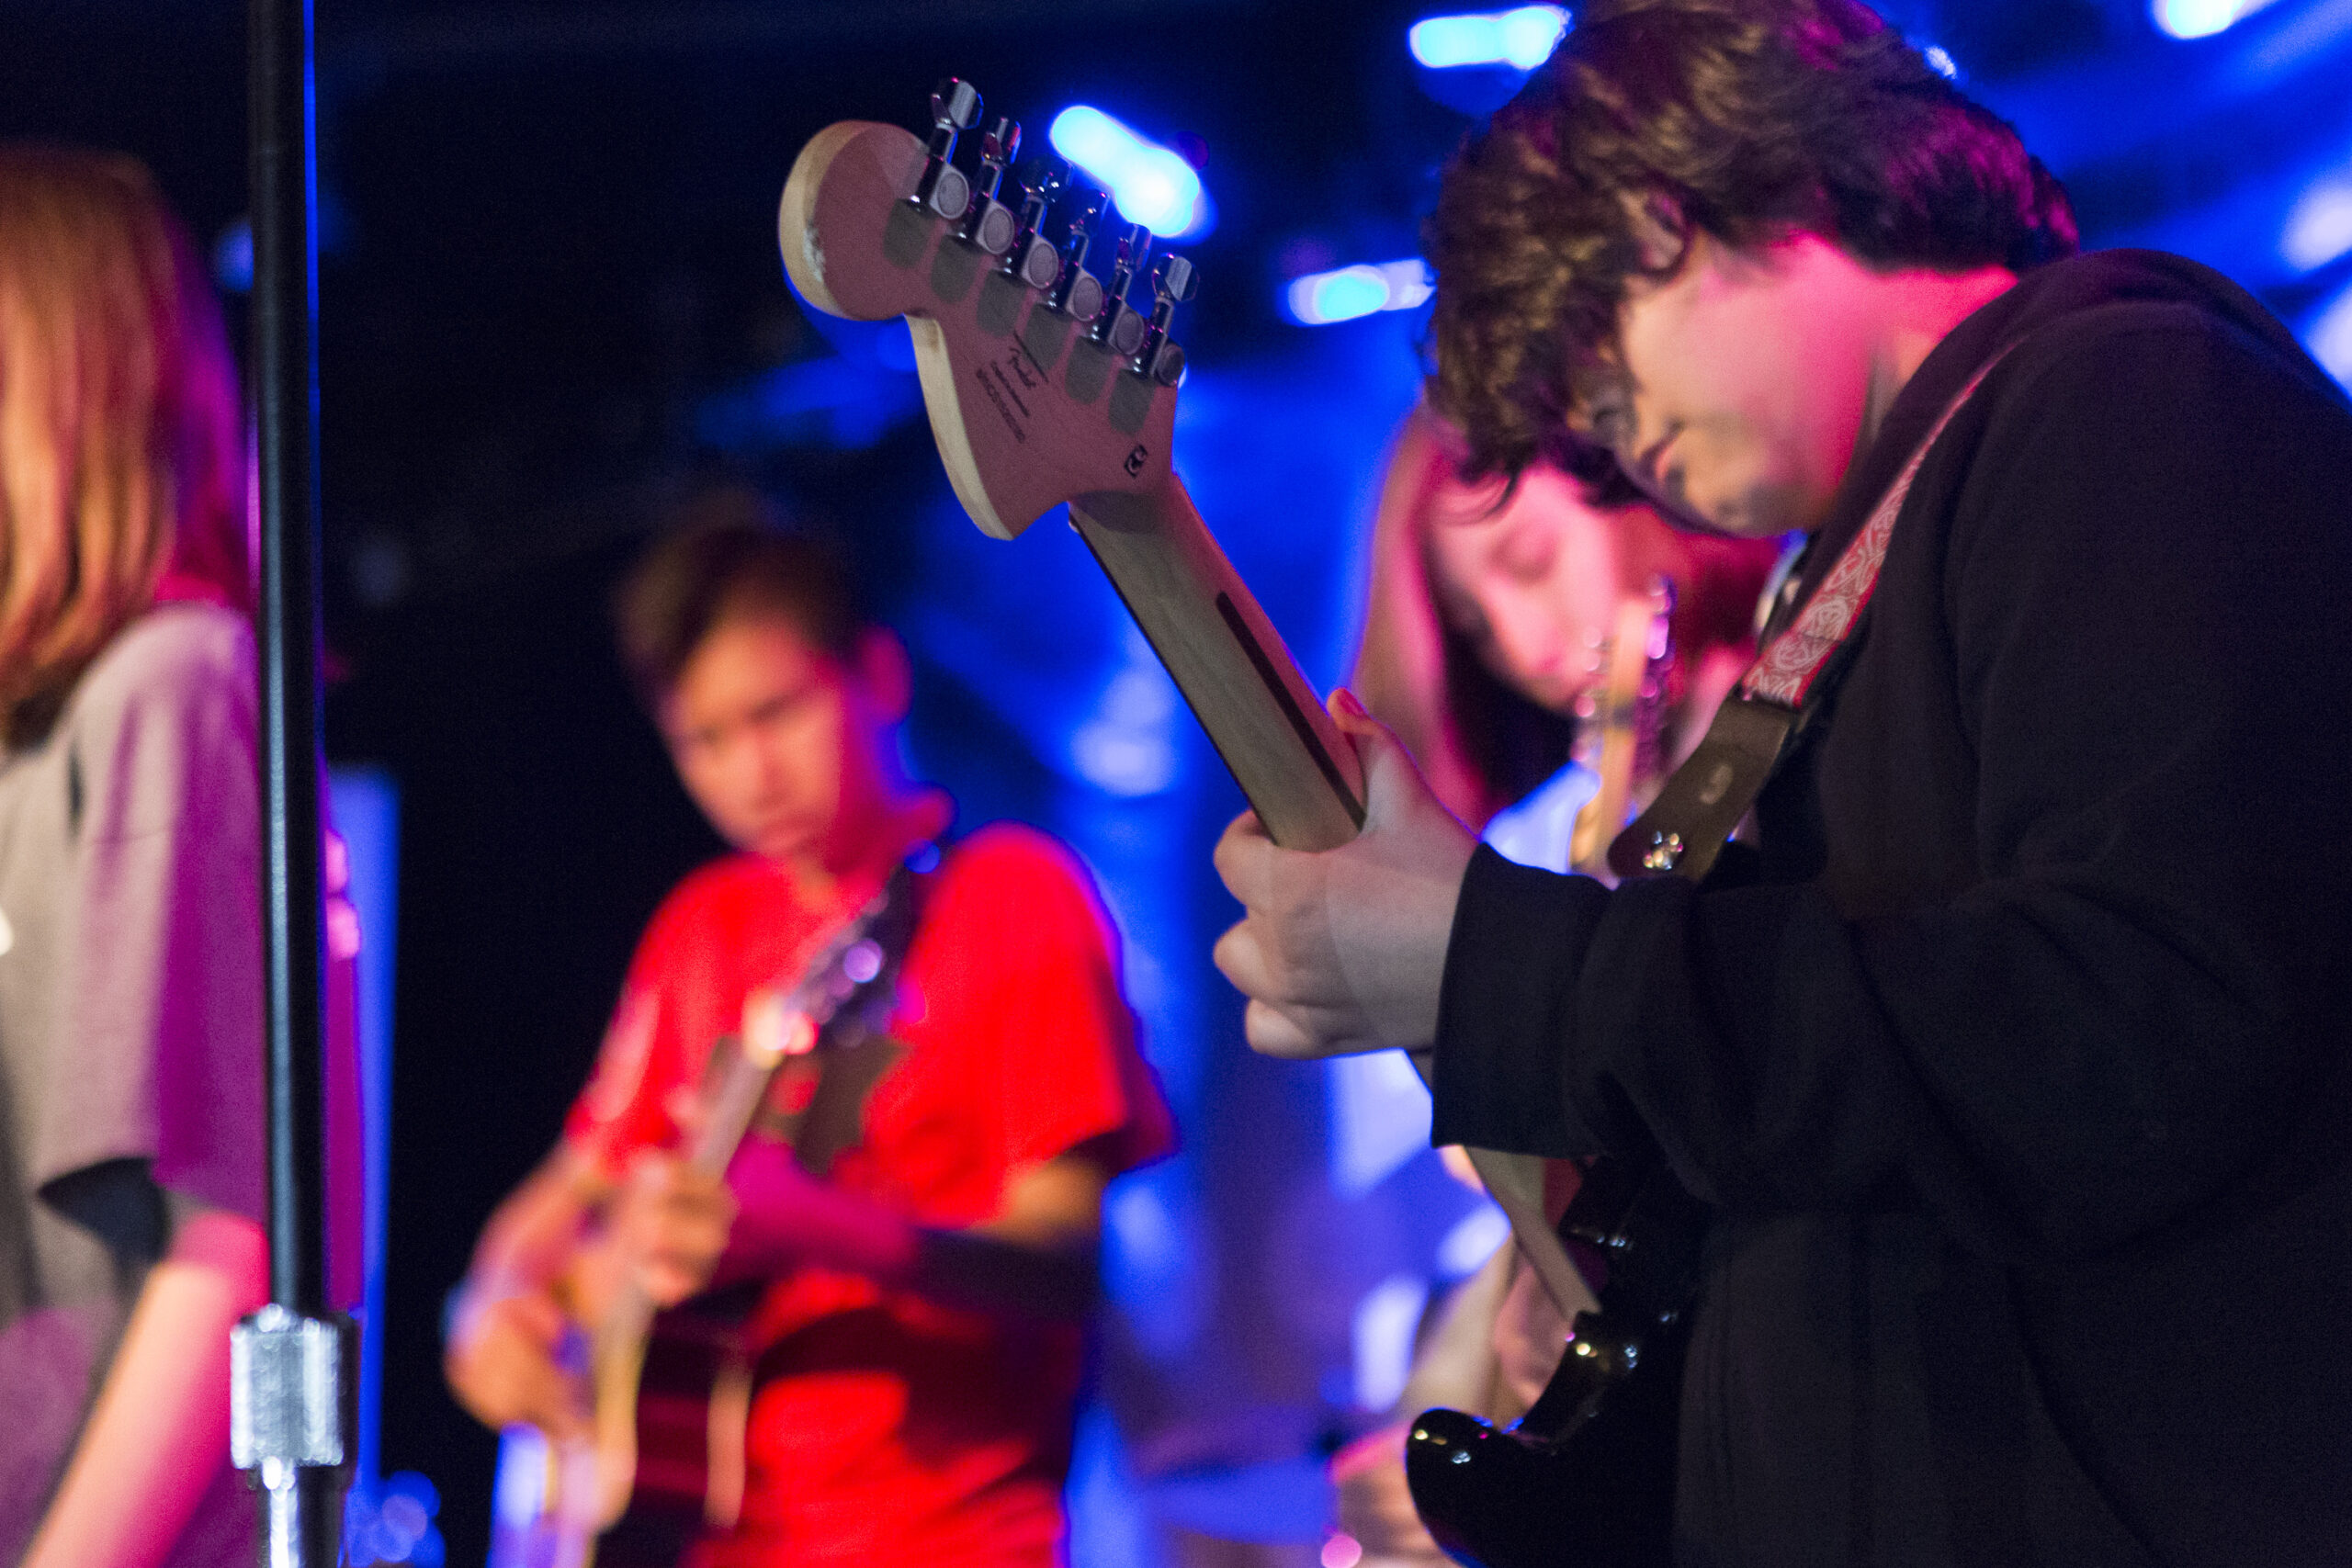 Kid playing electric guitar on stage